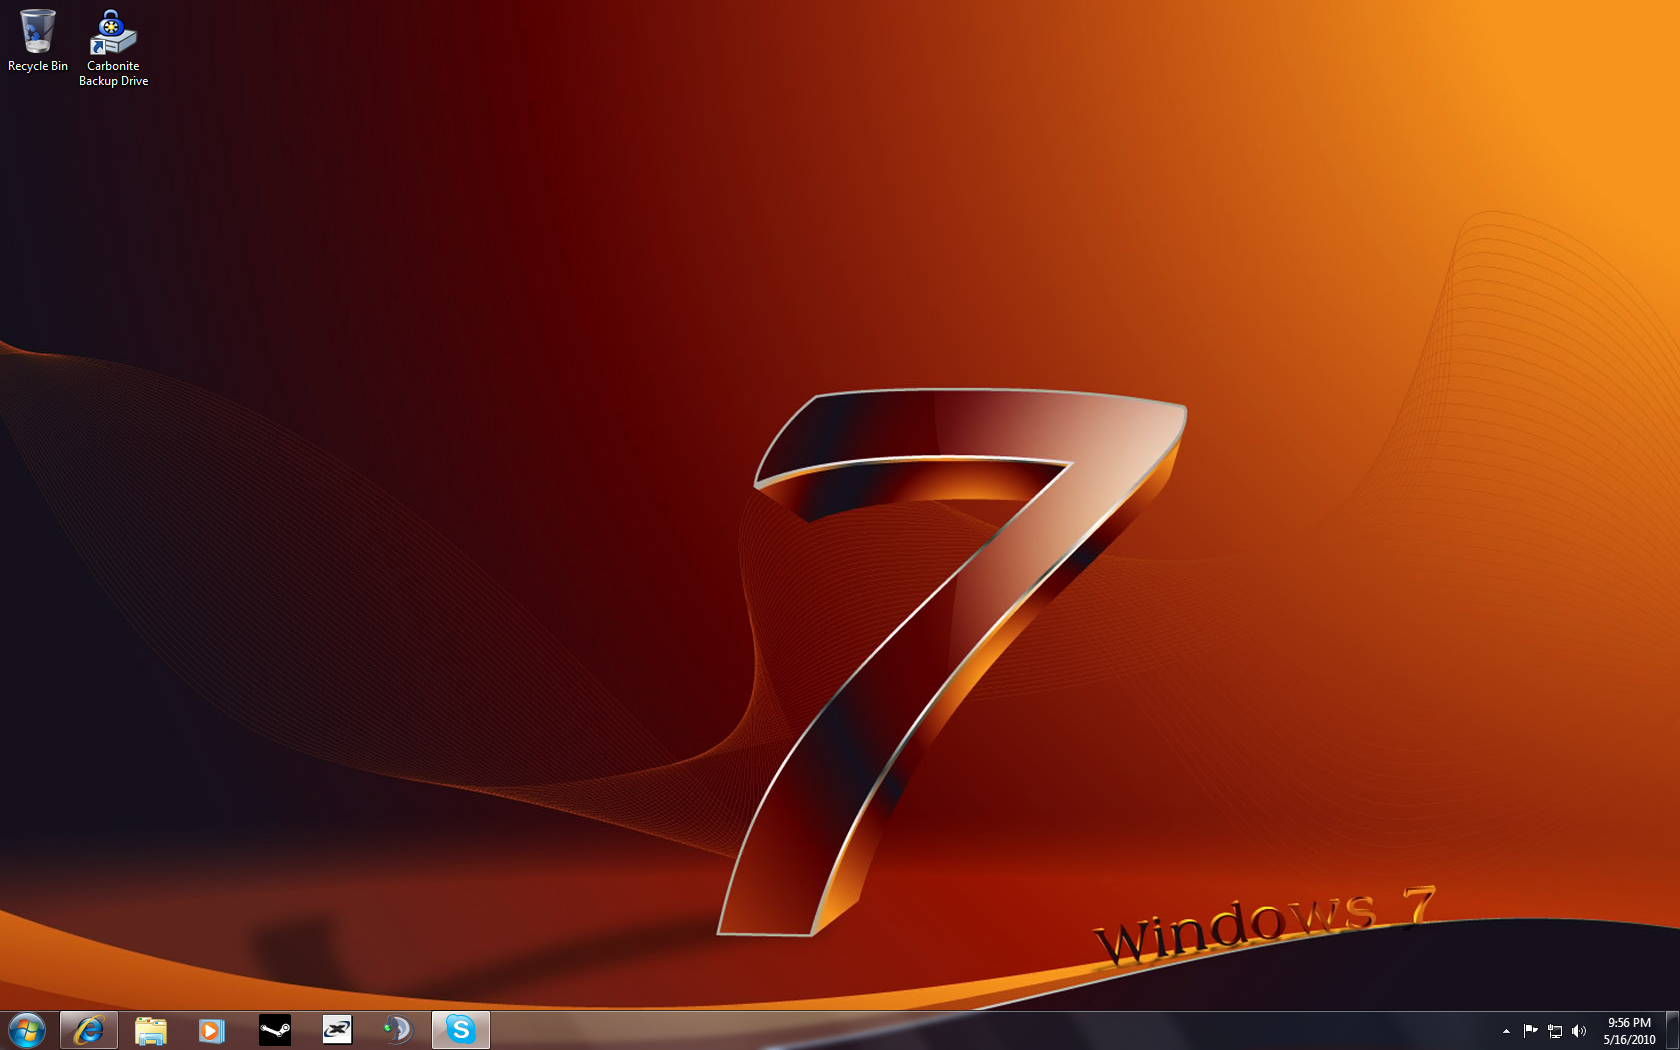 Win 7 background